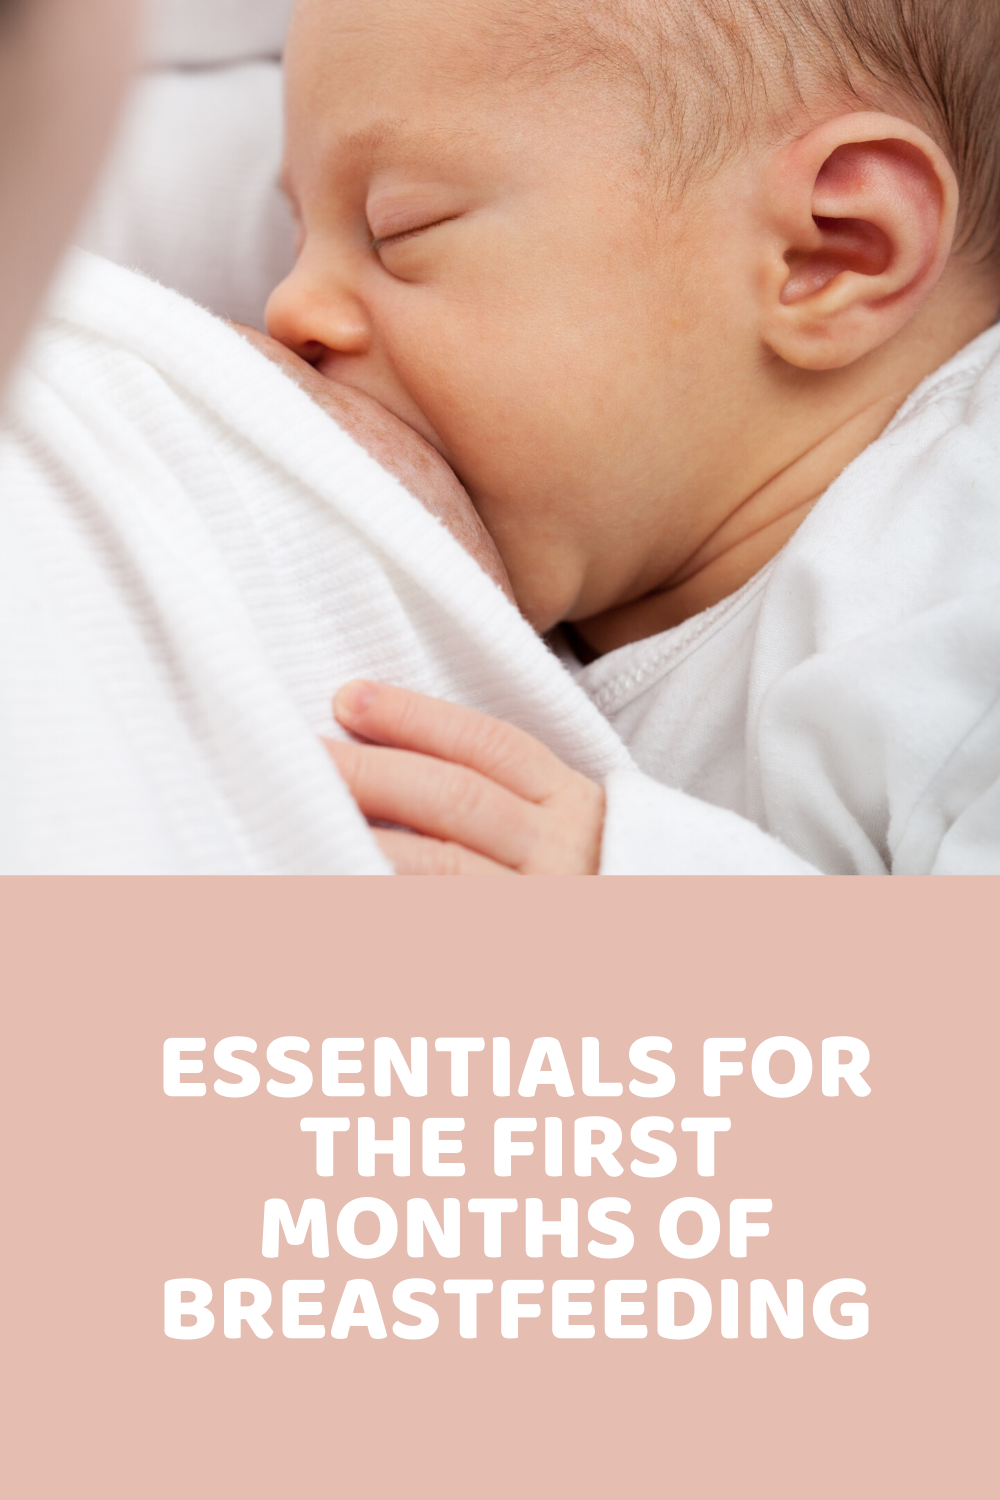 Essentials For The First Months Of Breastfeeding